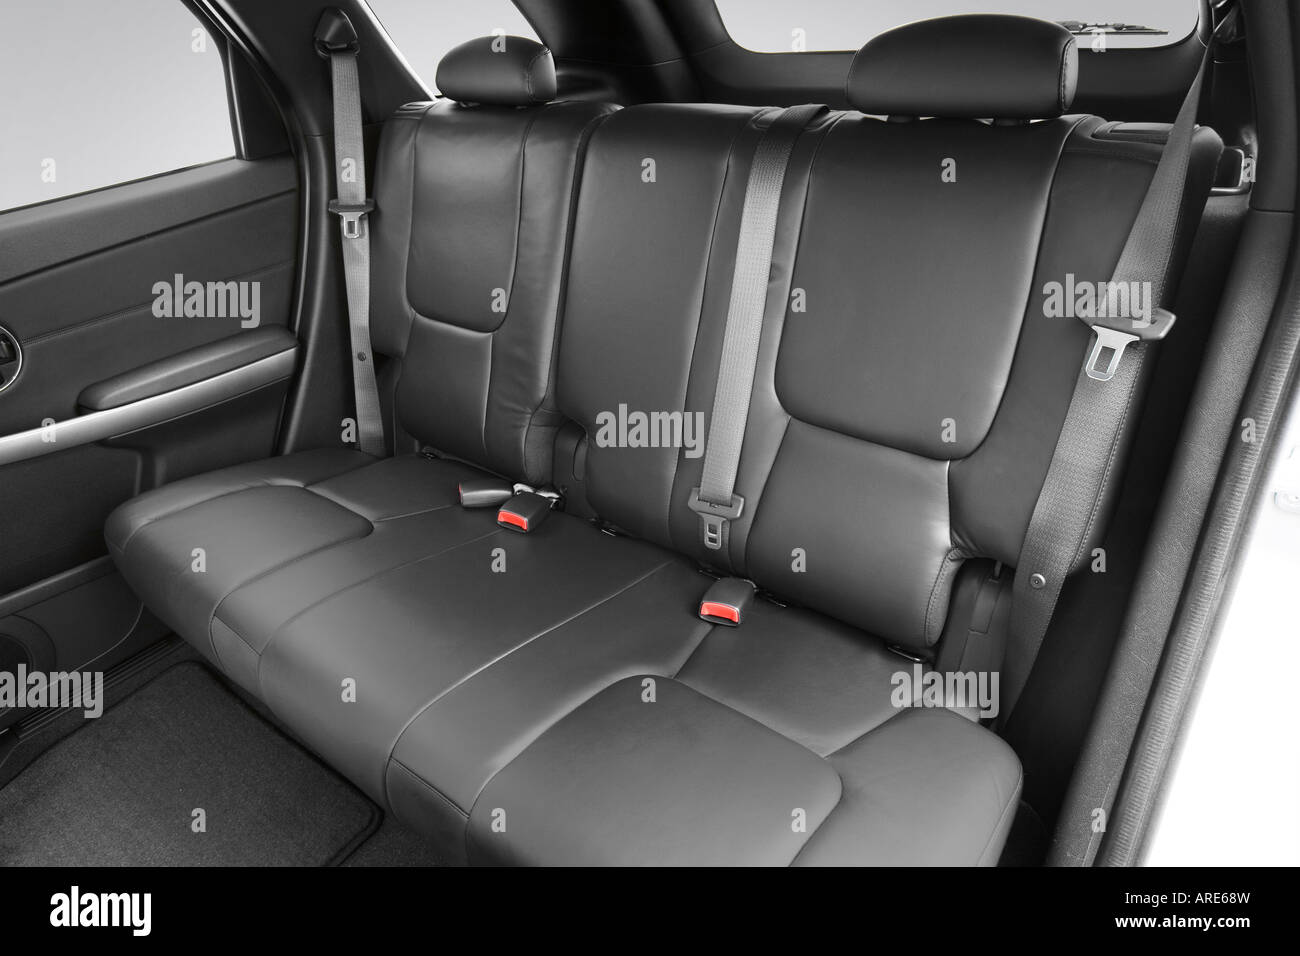 2006 Pontiac Torrent In Silver Rear Seats Stock Photo 16027080